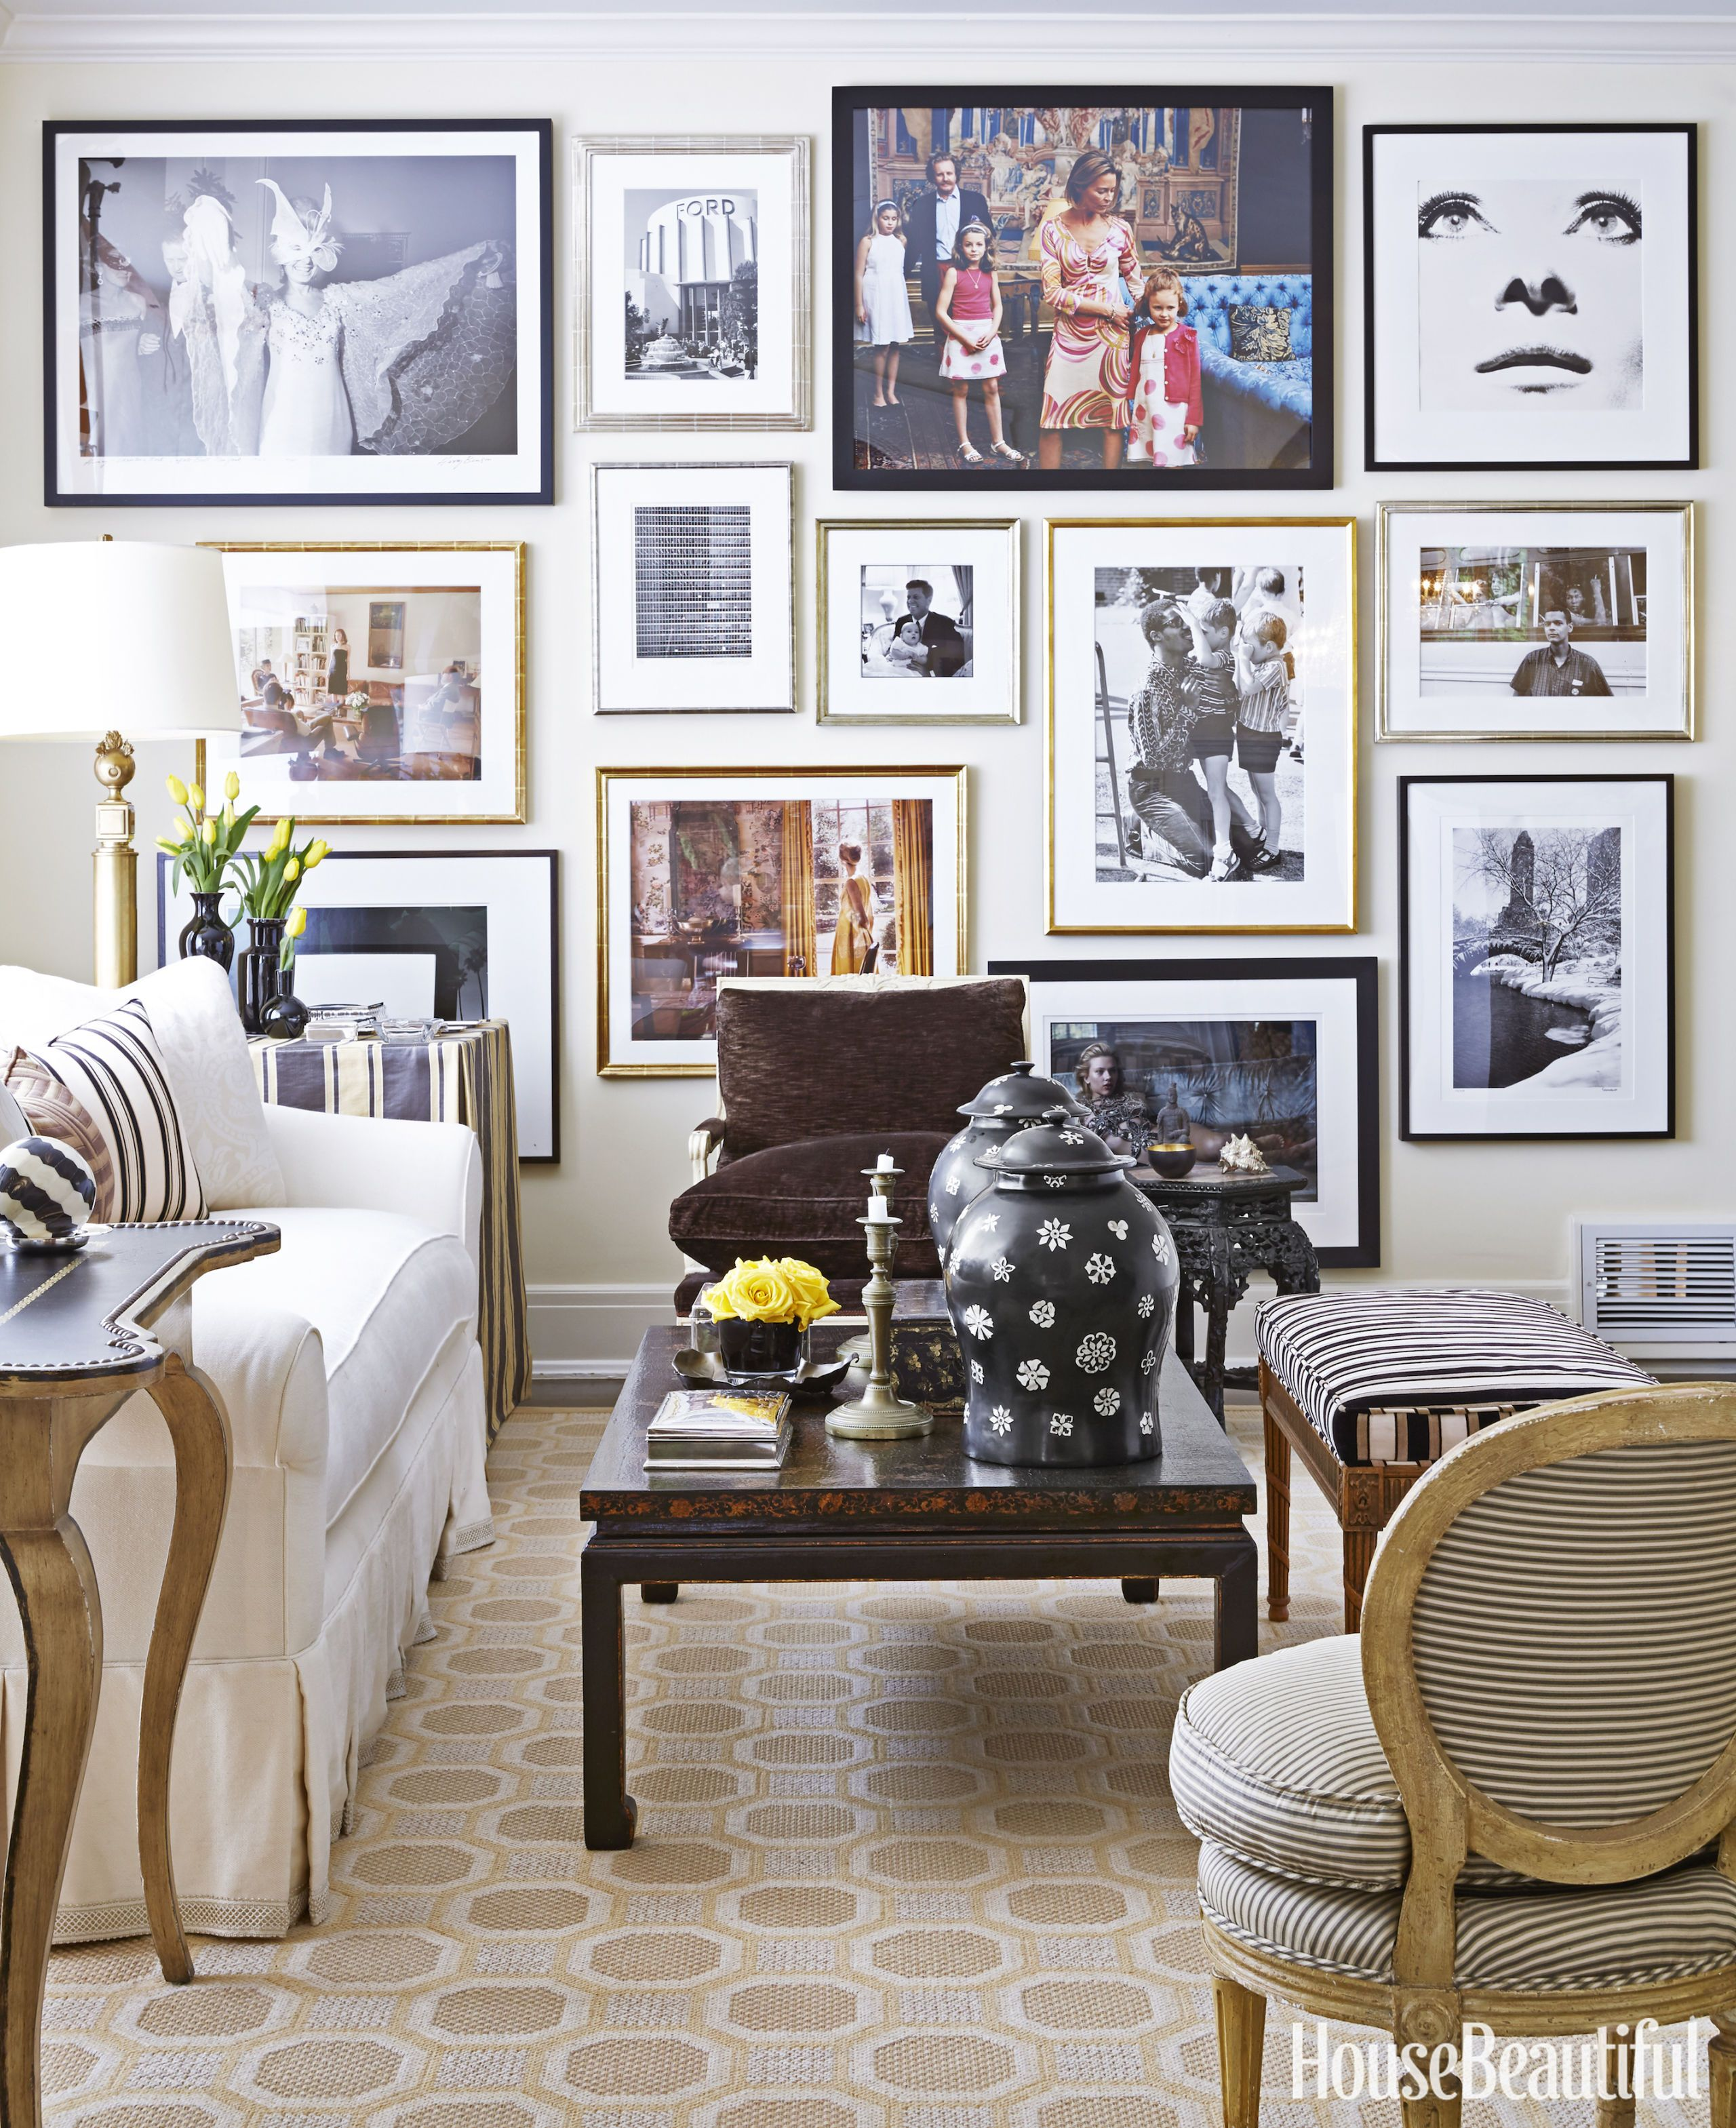 22 Wall Art Ideas You'll Want To Steal Immediately